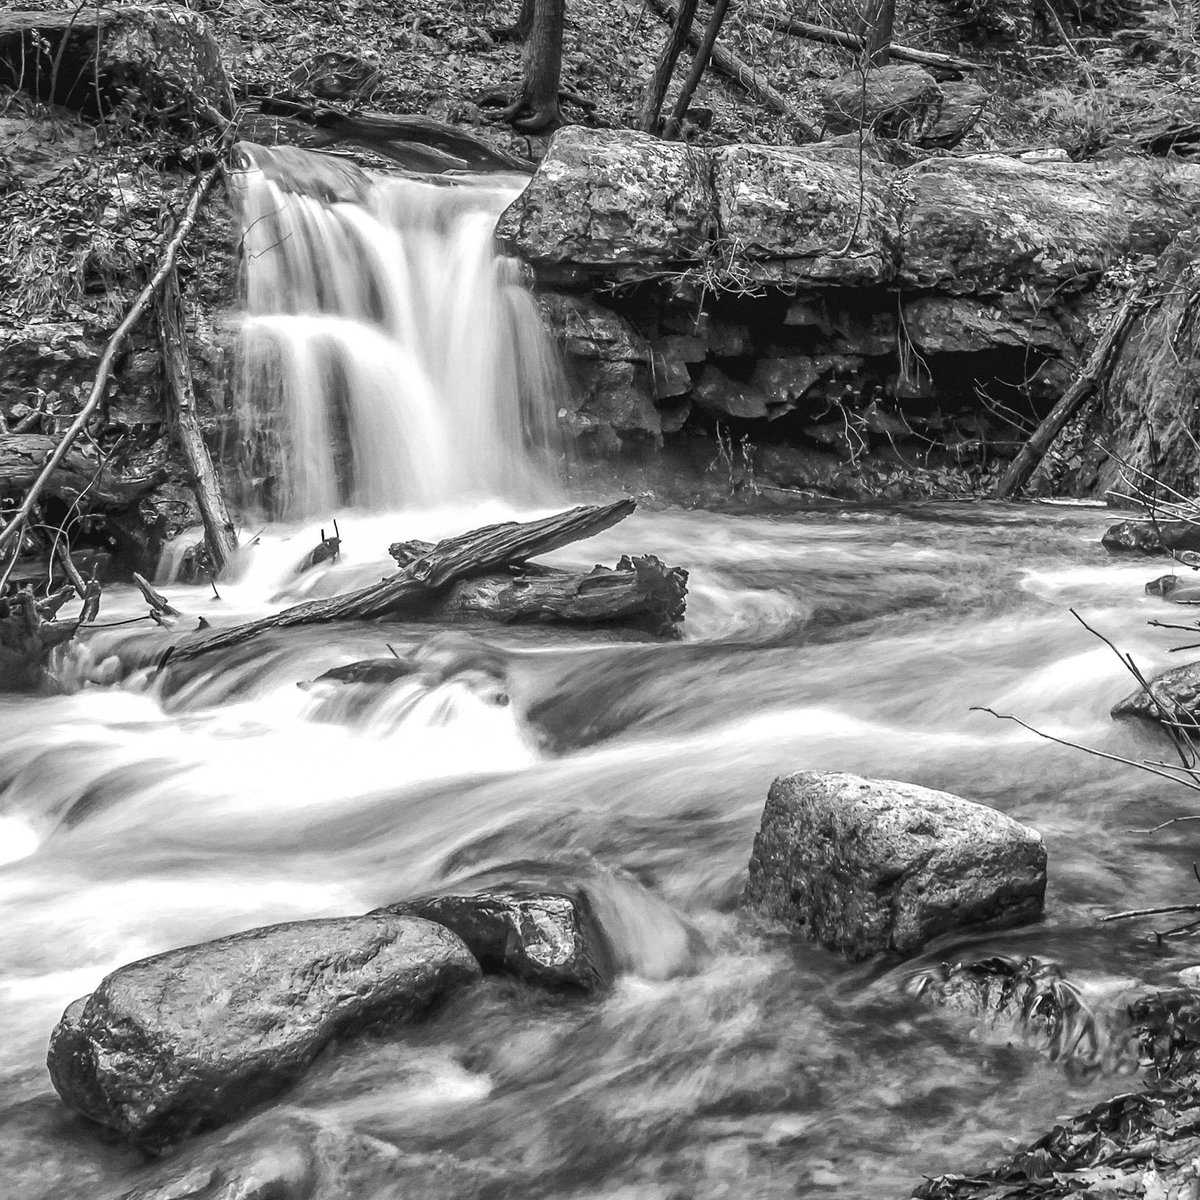 But to see in black and white is a delight for the soul andri cauldwell monochromelandscape quote hiking longexposure waterfall delwatergapnps